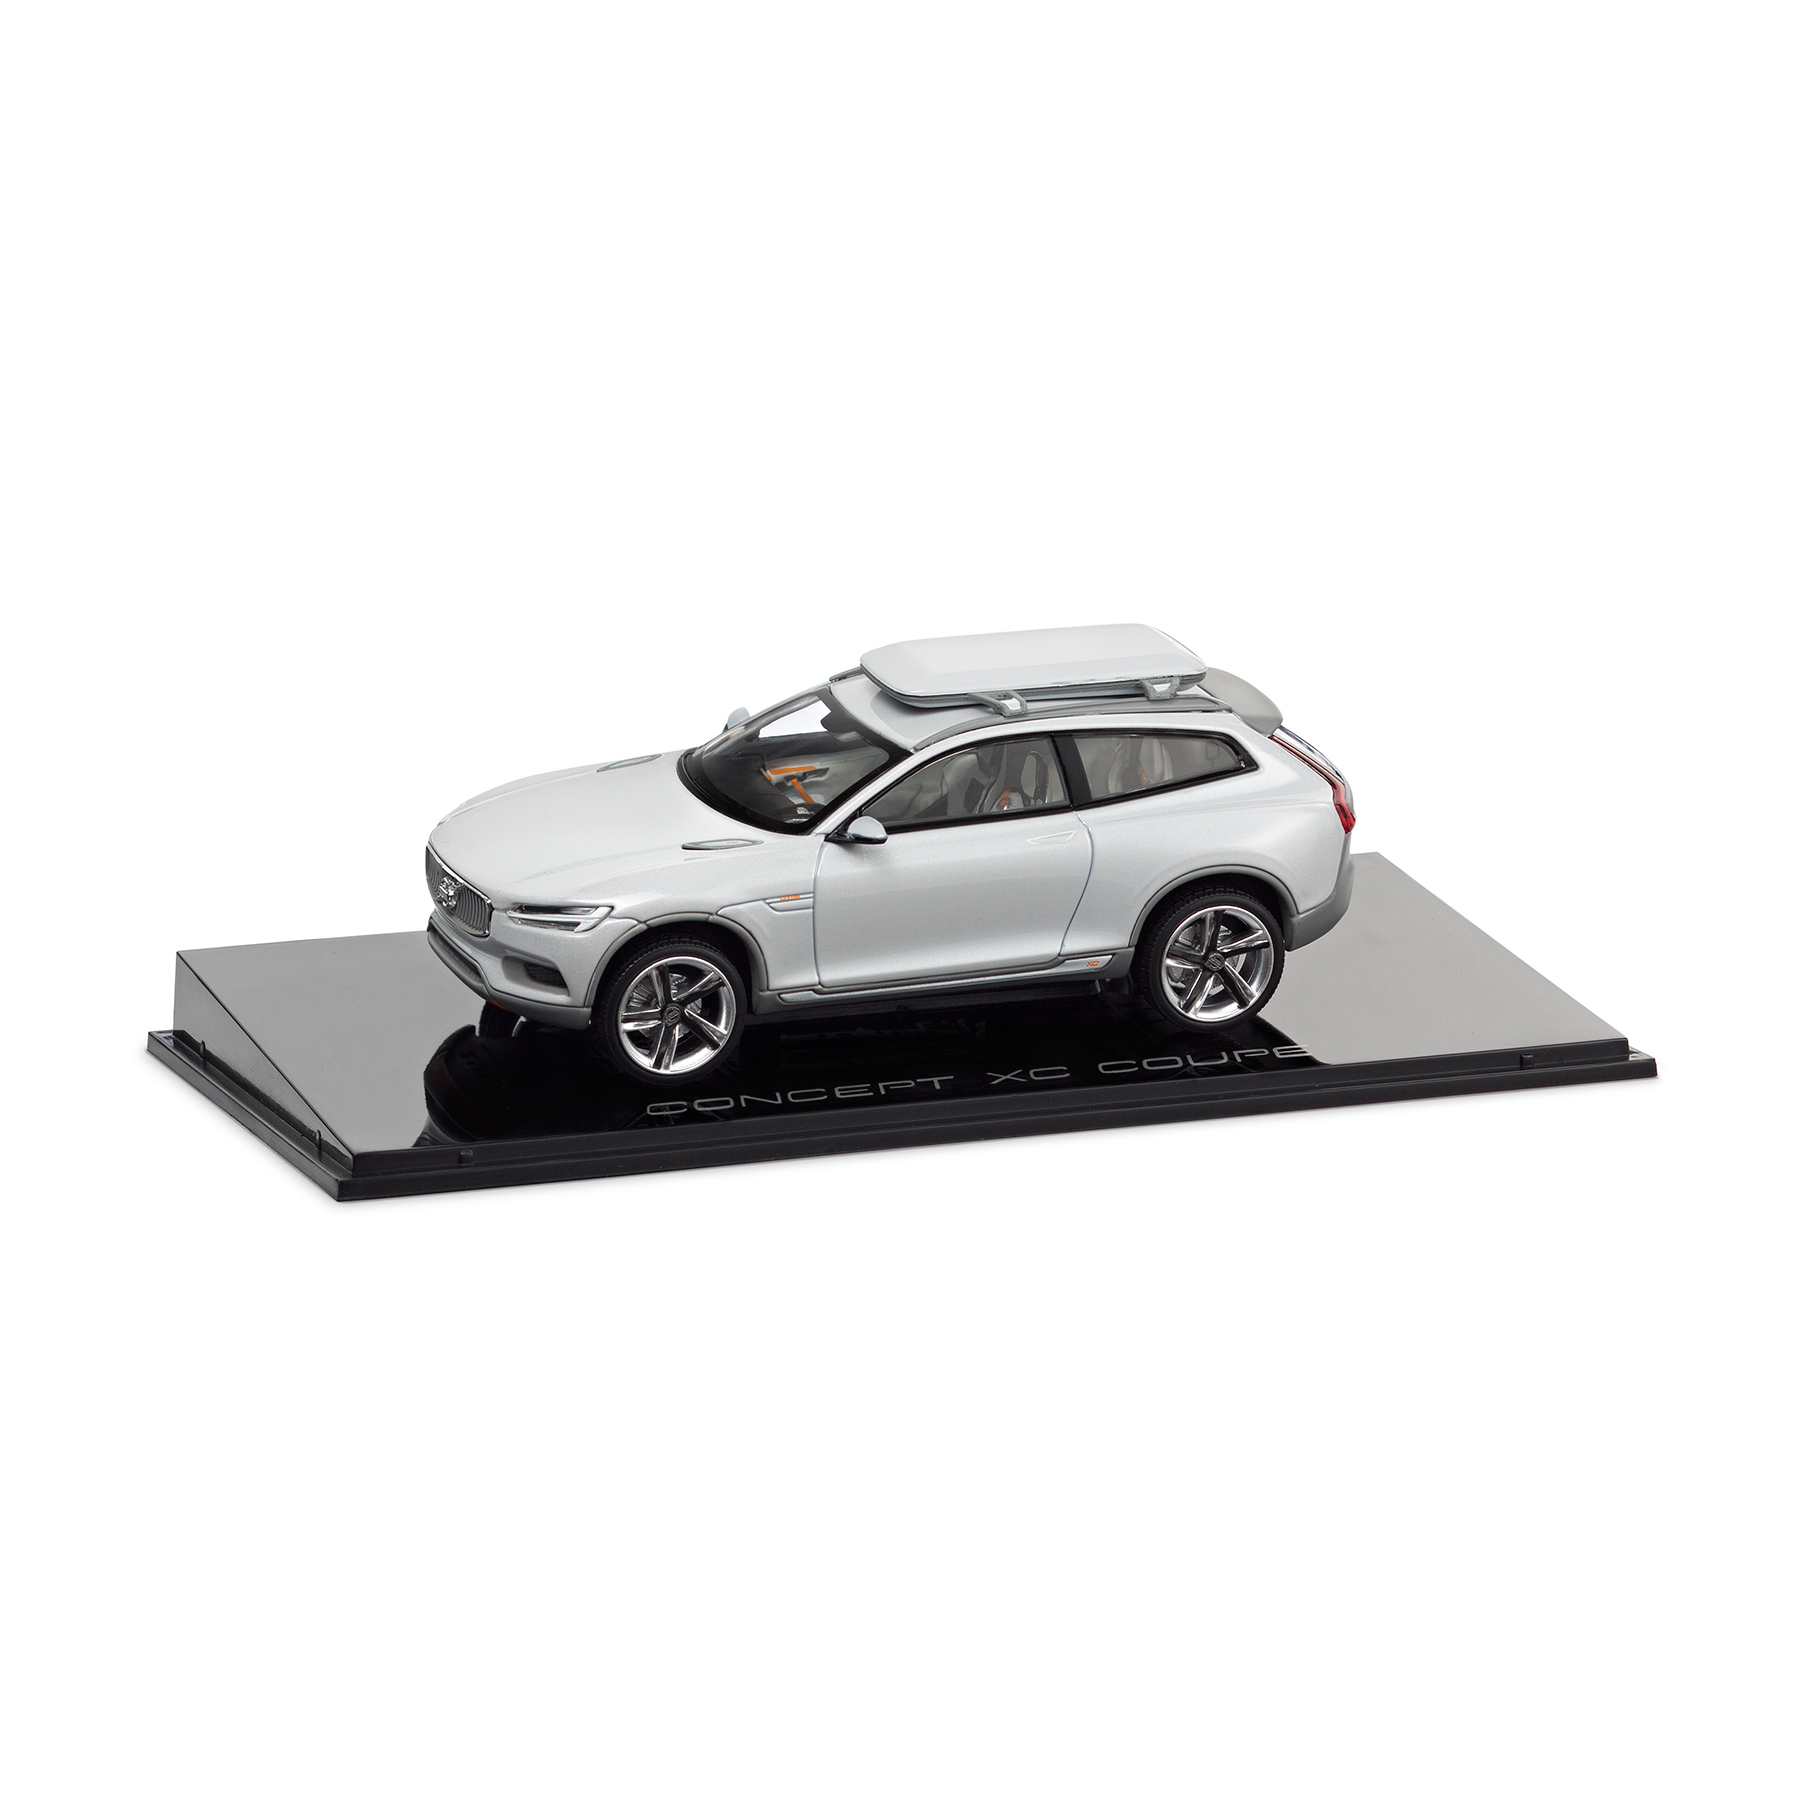 Volvo Concept XC Coupe Resin 1:43